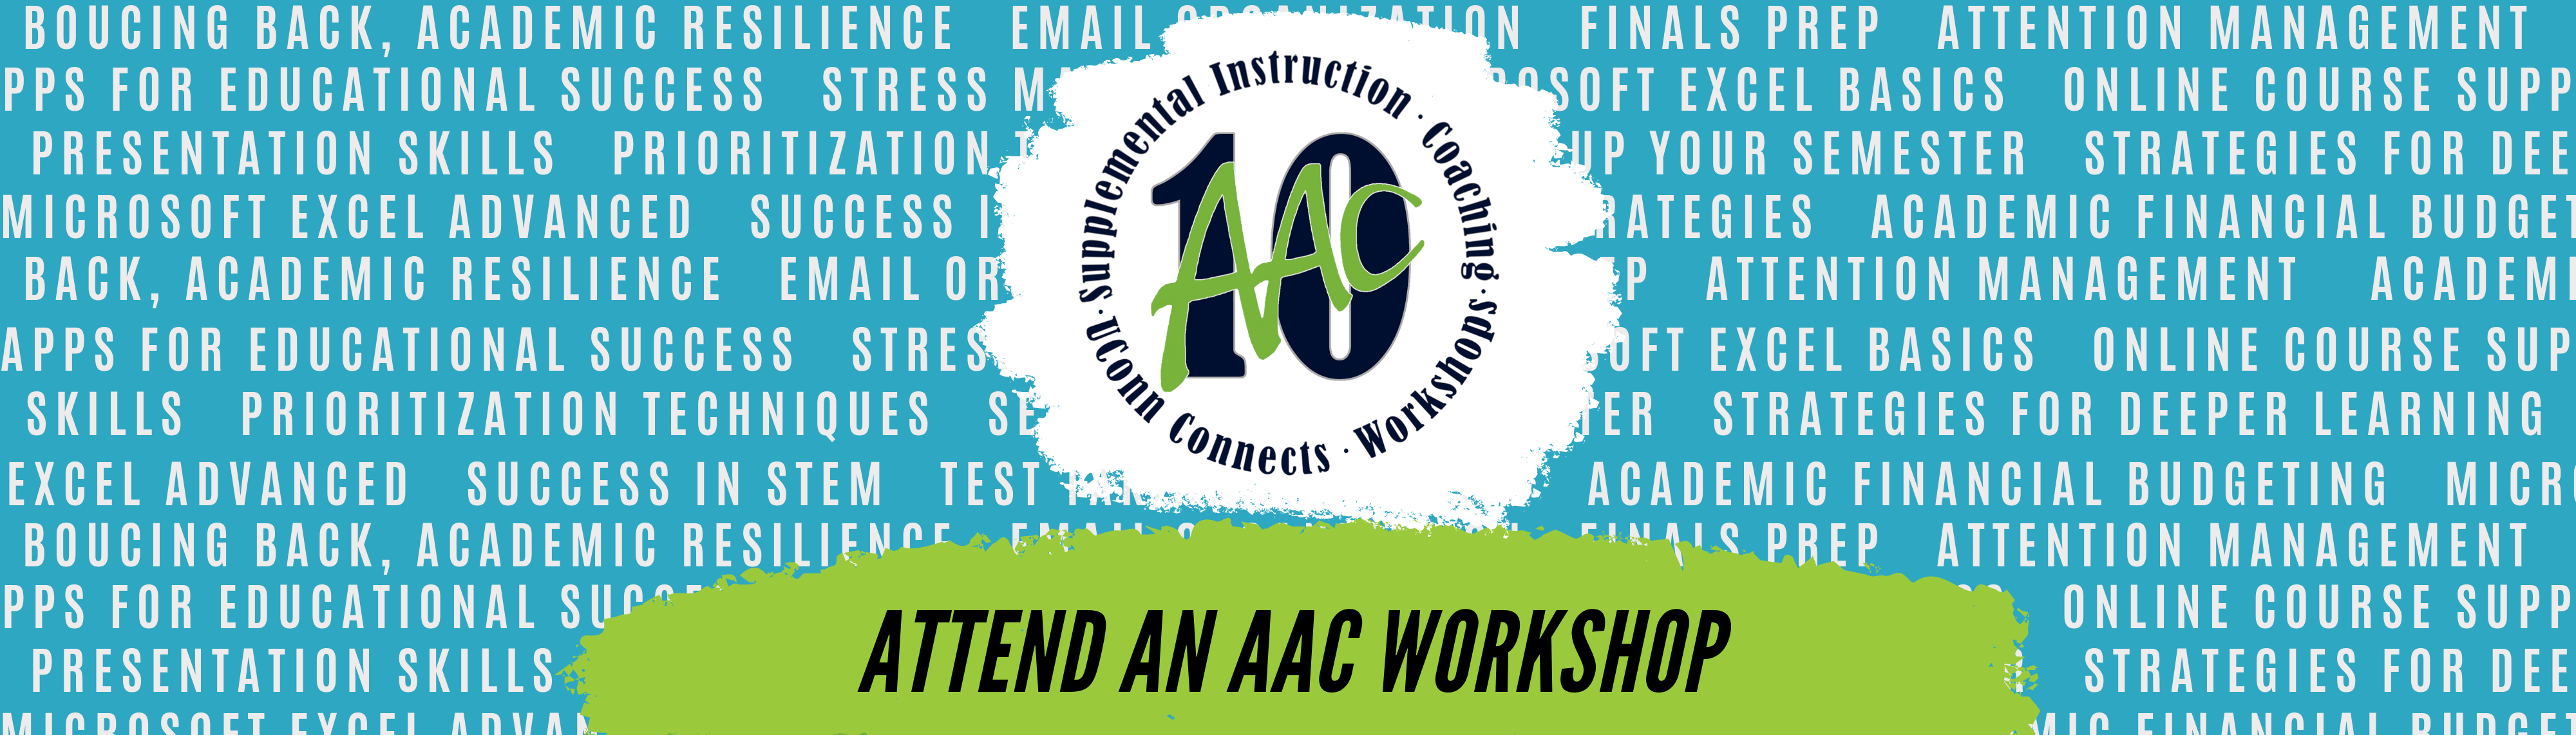 attend an AAC workshop